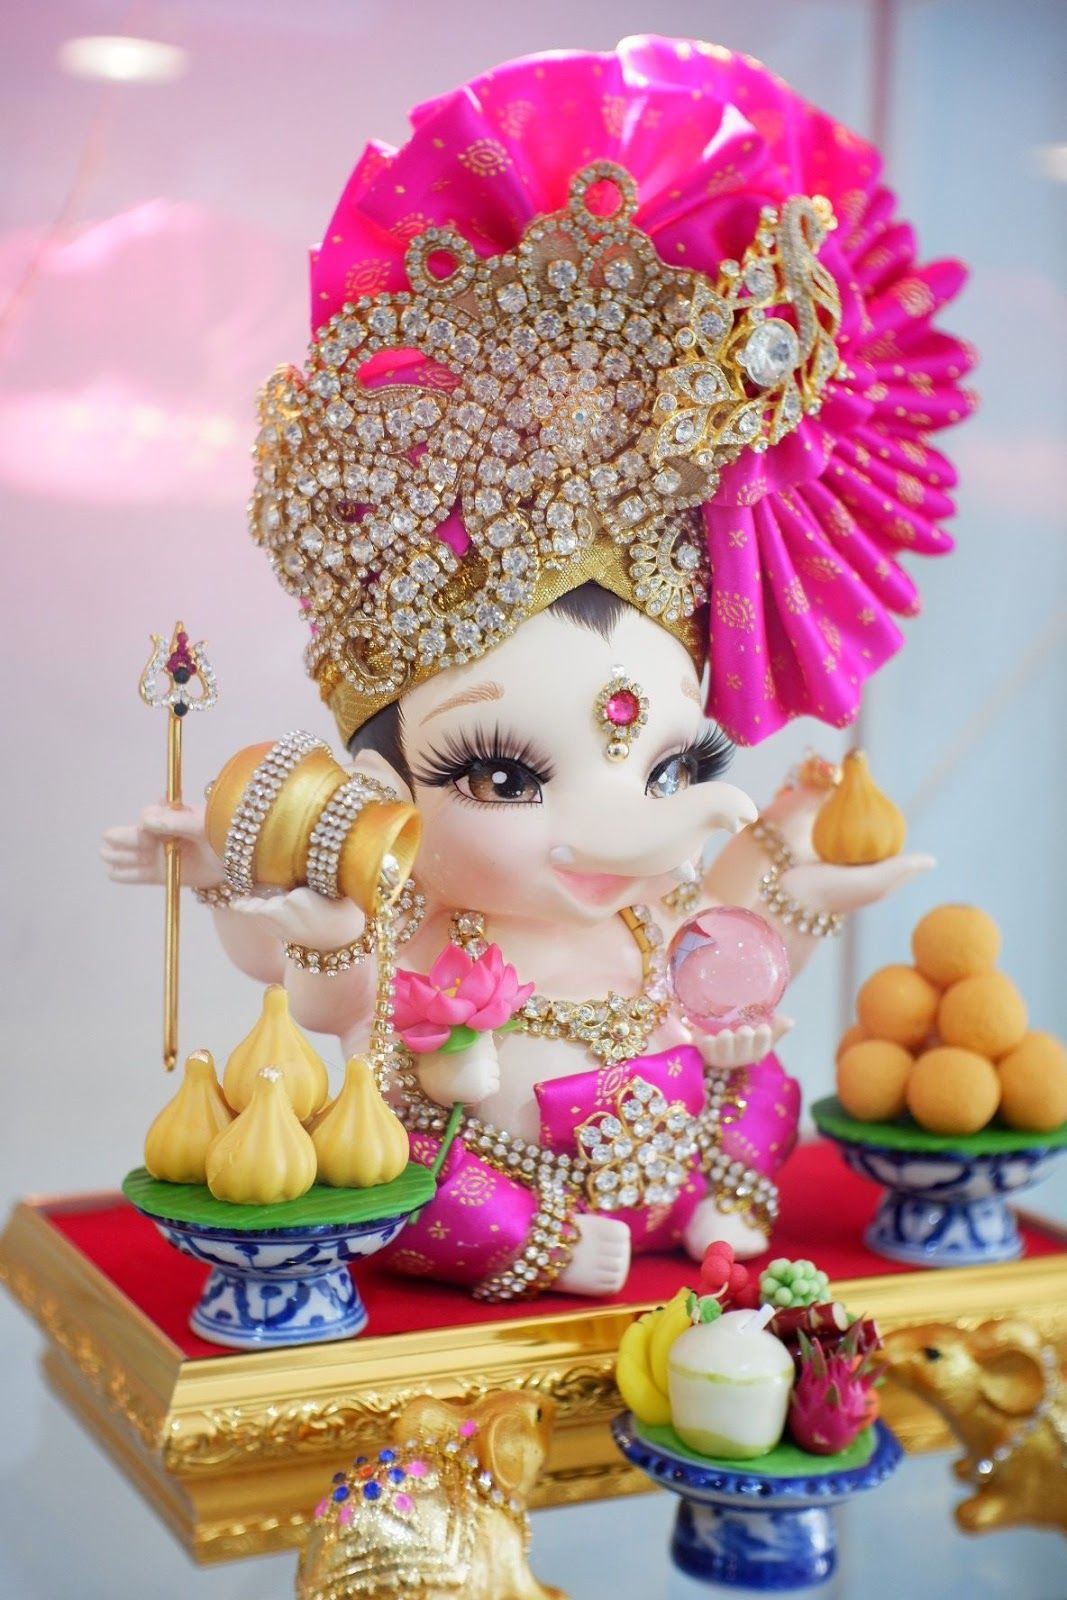 Paintings Top 20 Photos Of Cute Ganesha To Use For Instagram And Whatsapp Story Baby Ganesha Shri Ganesh Images Happy Ganesh Chaturthi Images